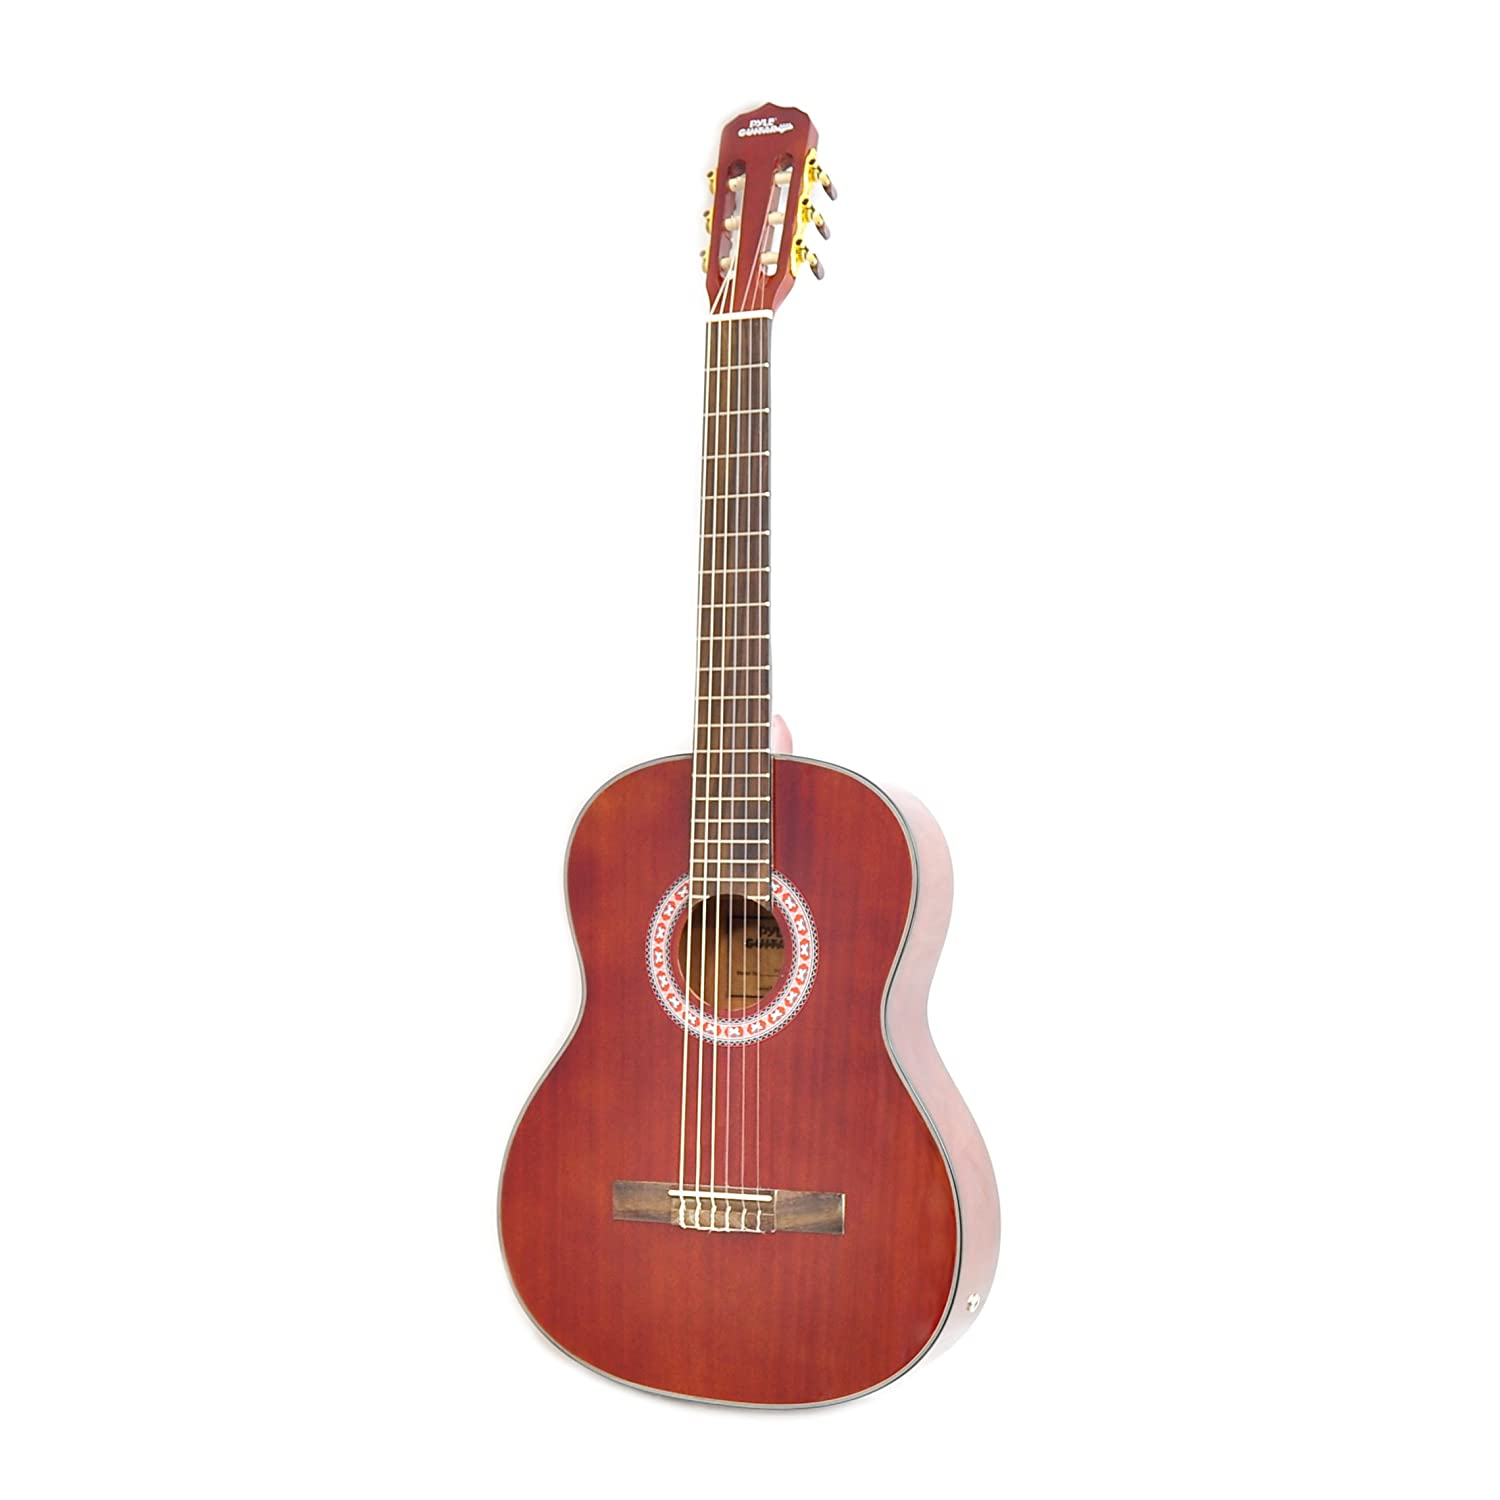 "Classical Acoustic Guitar Starter Pack - 39.5"" 6 String Mahogany High-Gloss Polished Guitar w/Built-in Preamplifier, Case Bag, 6 Nylon Strings, Tuner, Picks, Great for Beginner - Pyle PGA32RBR Sound Around"